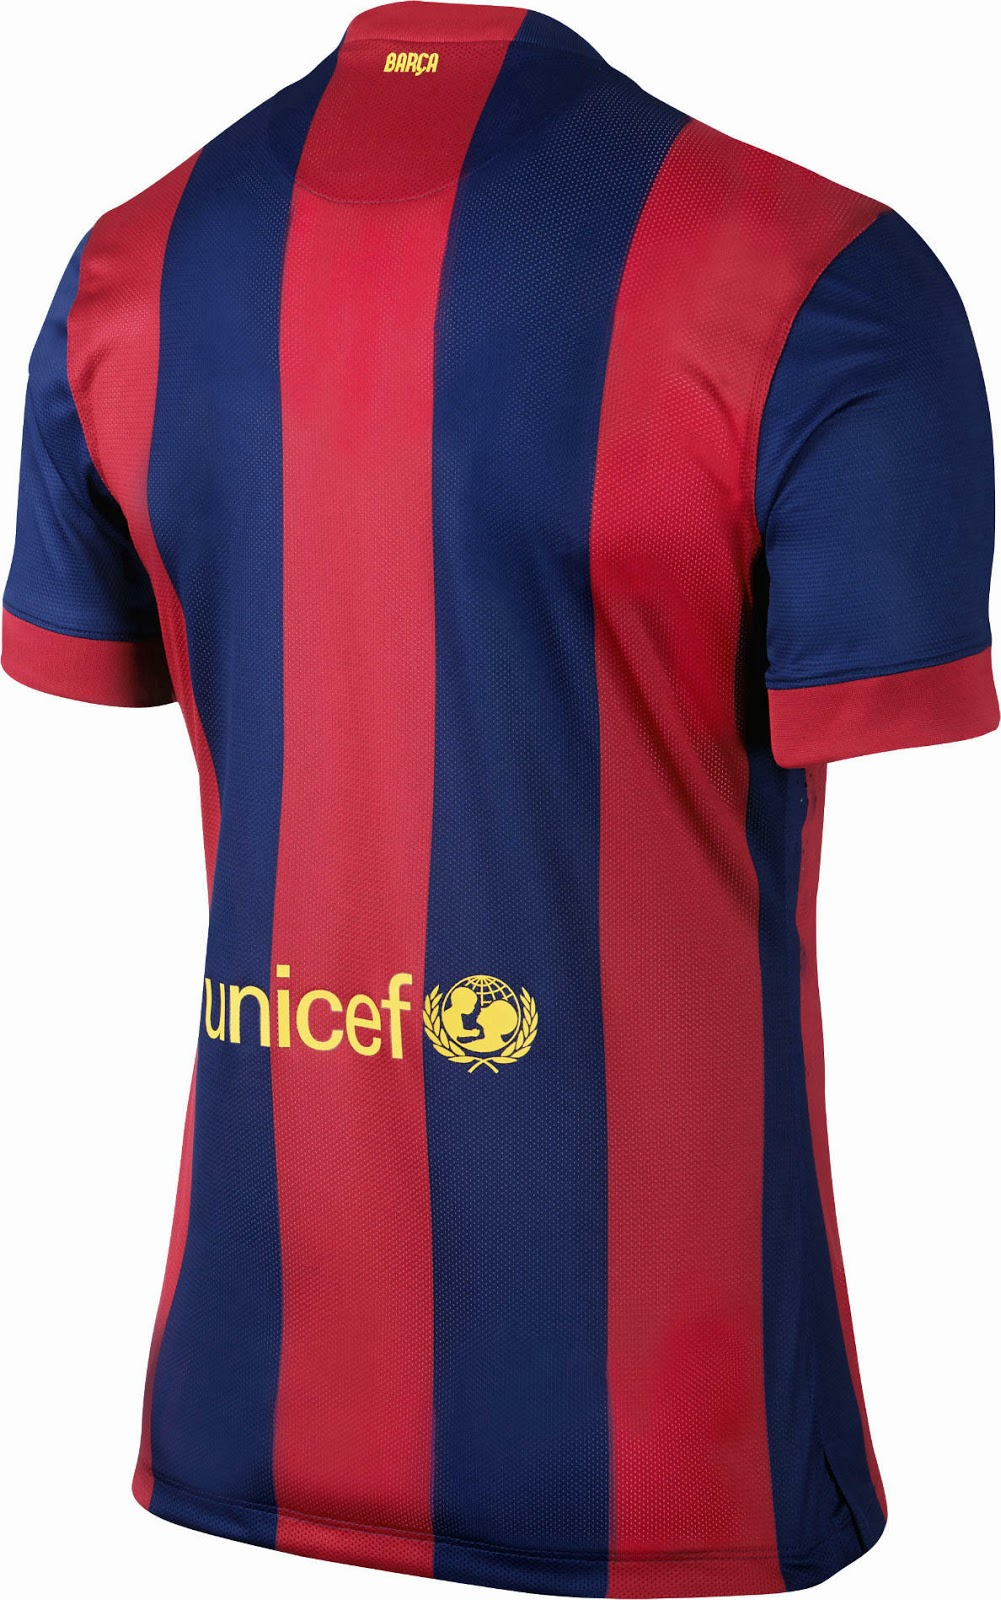 new product 8e207 d2bc6 New FC Barcelona 2014-2015 Away Jersey Shirt Kit / Have a ...